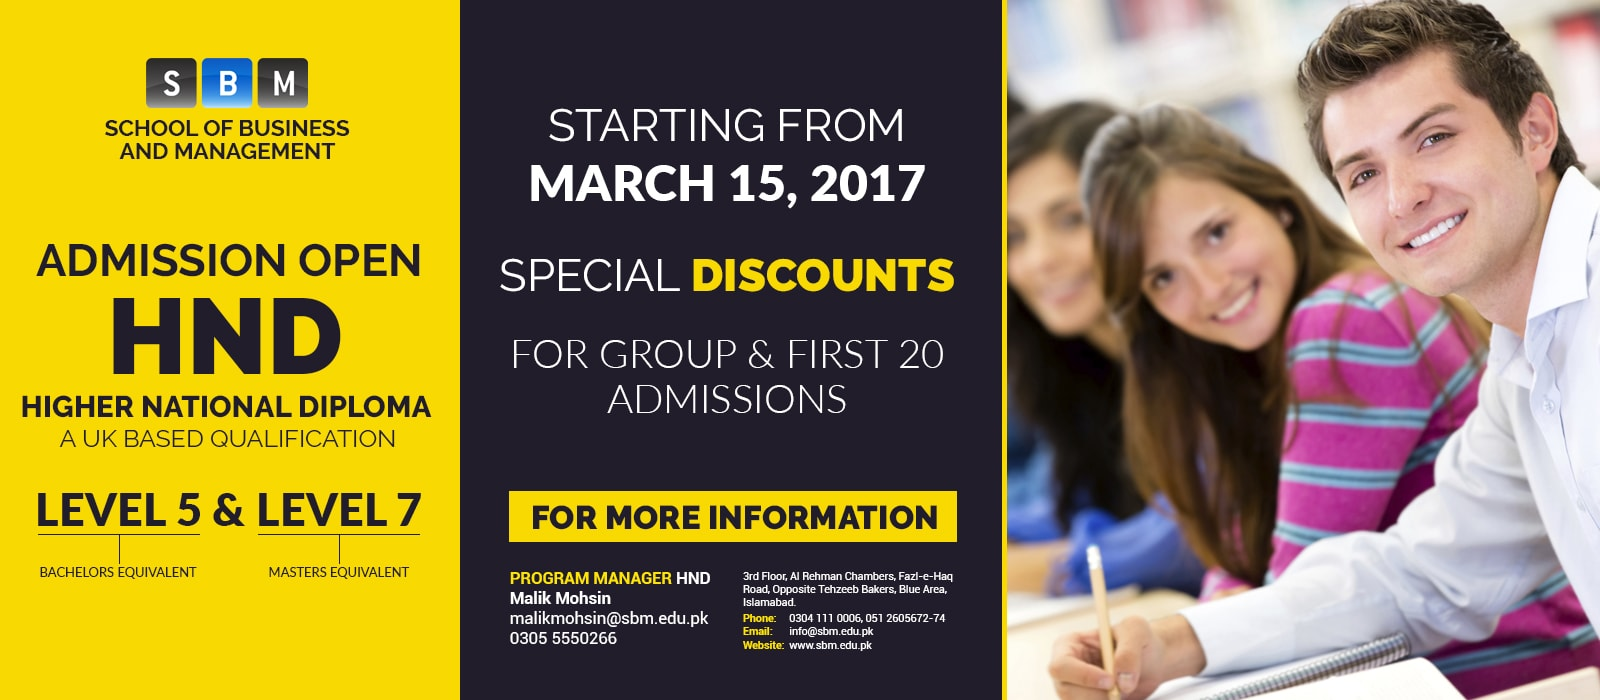 SBM Offers 1st Session of HND Starting from March 15